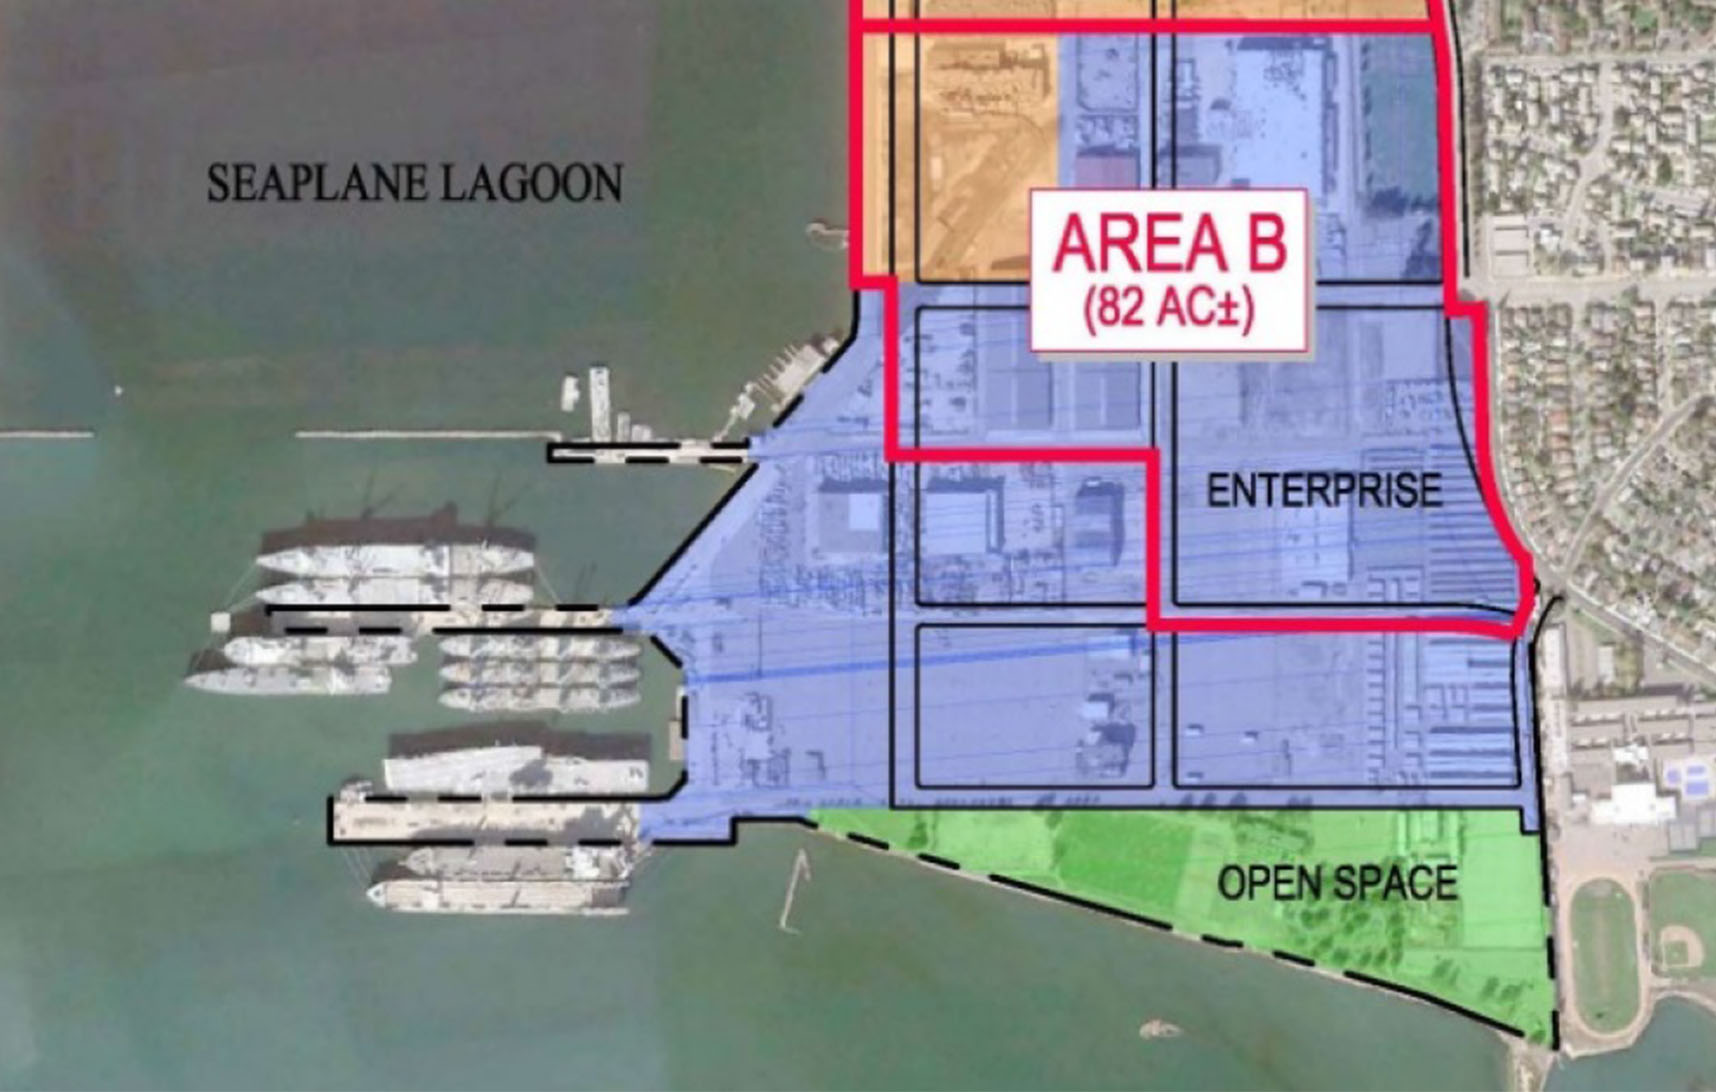 City of Alameda  The city plans to promote the development of Alameda Point's Enterprise Zone, shown here as Area B, with a  campaign to attract developers.